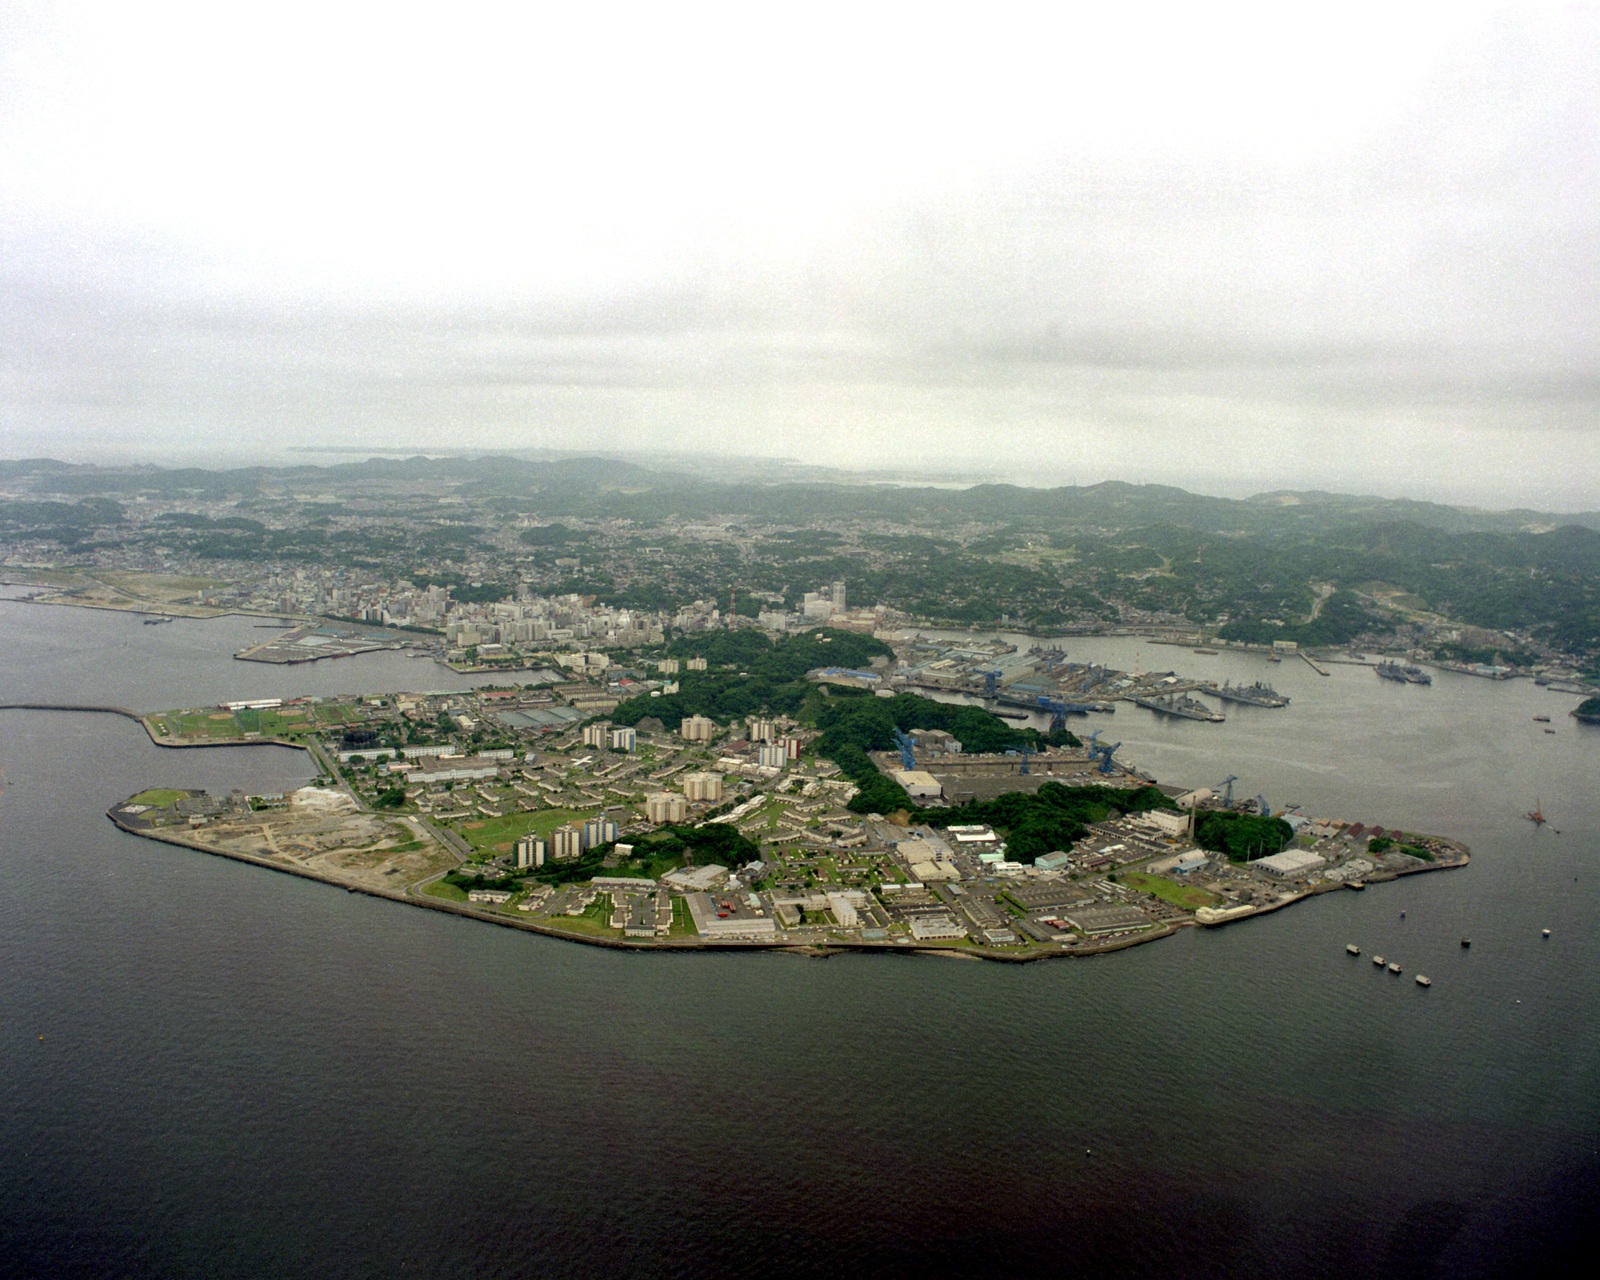 An aerial view of the Yokosuka Naval Base looking south